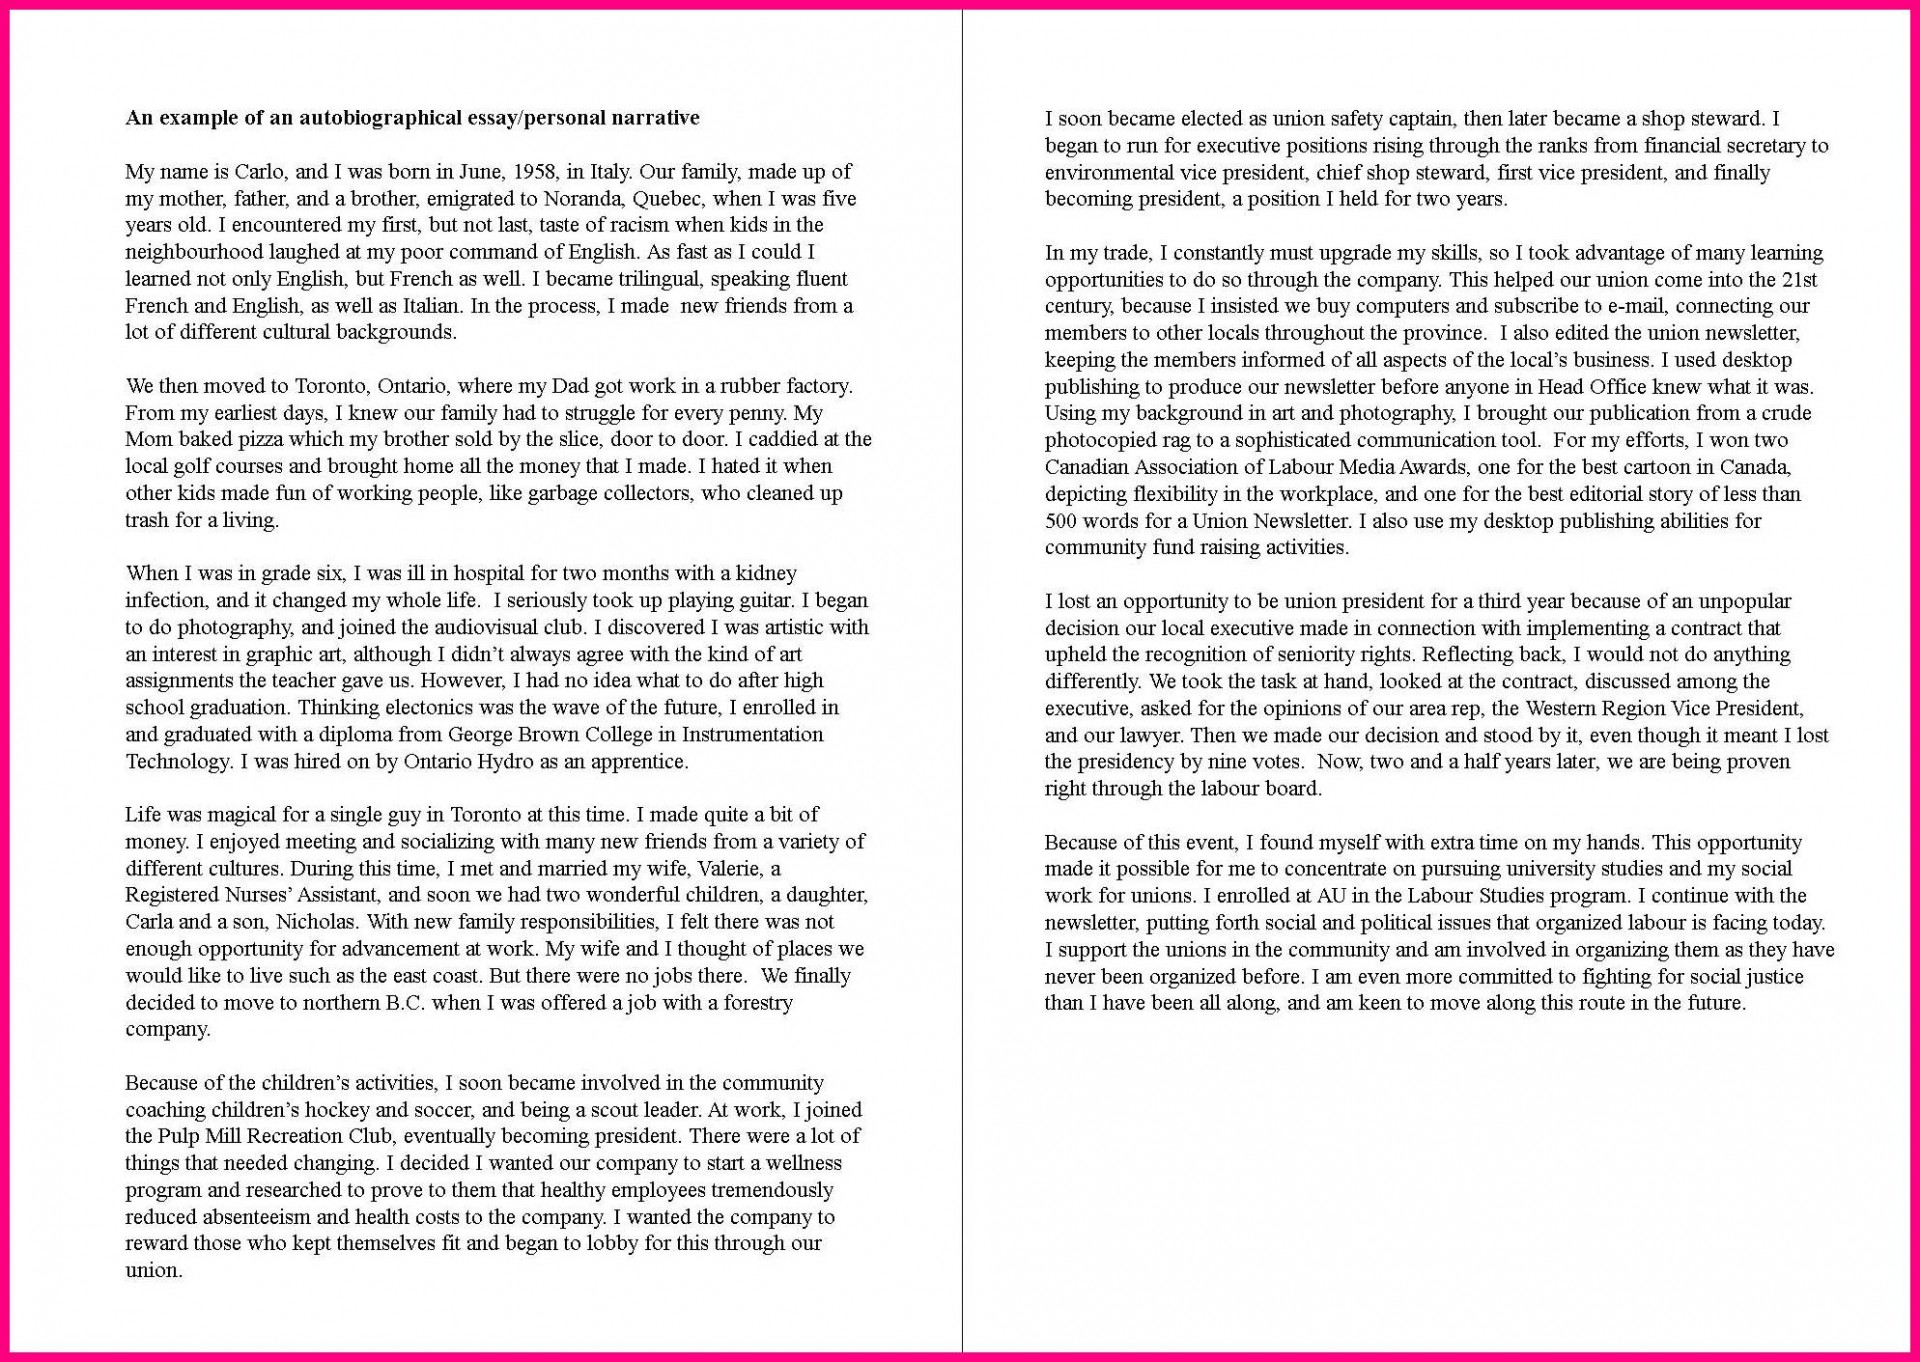 005 Autobiography Essay Example Family Background Sample Autobiographical Unique For Highschool Students Pdf Bibliography Examples 1920